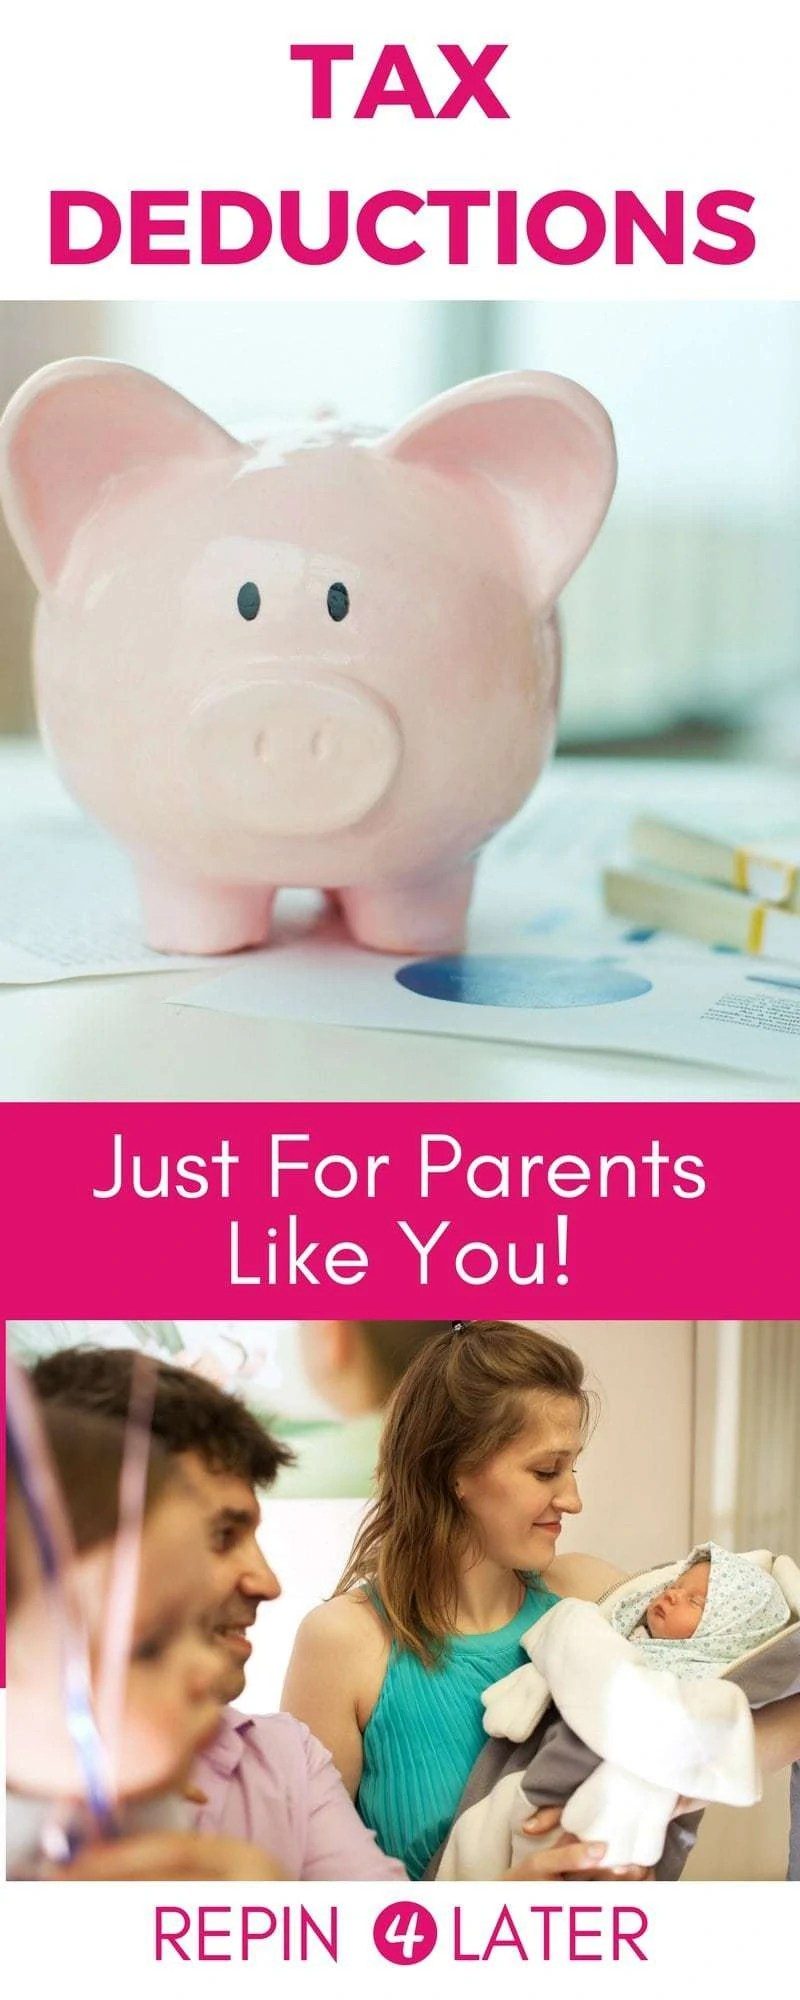 Great post with a tax deduction list for families!